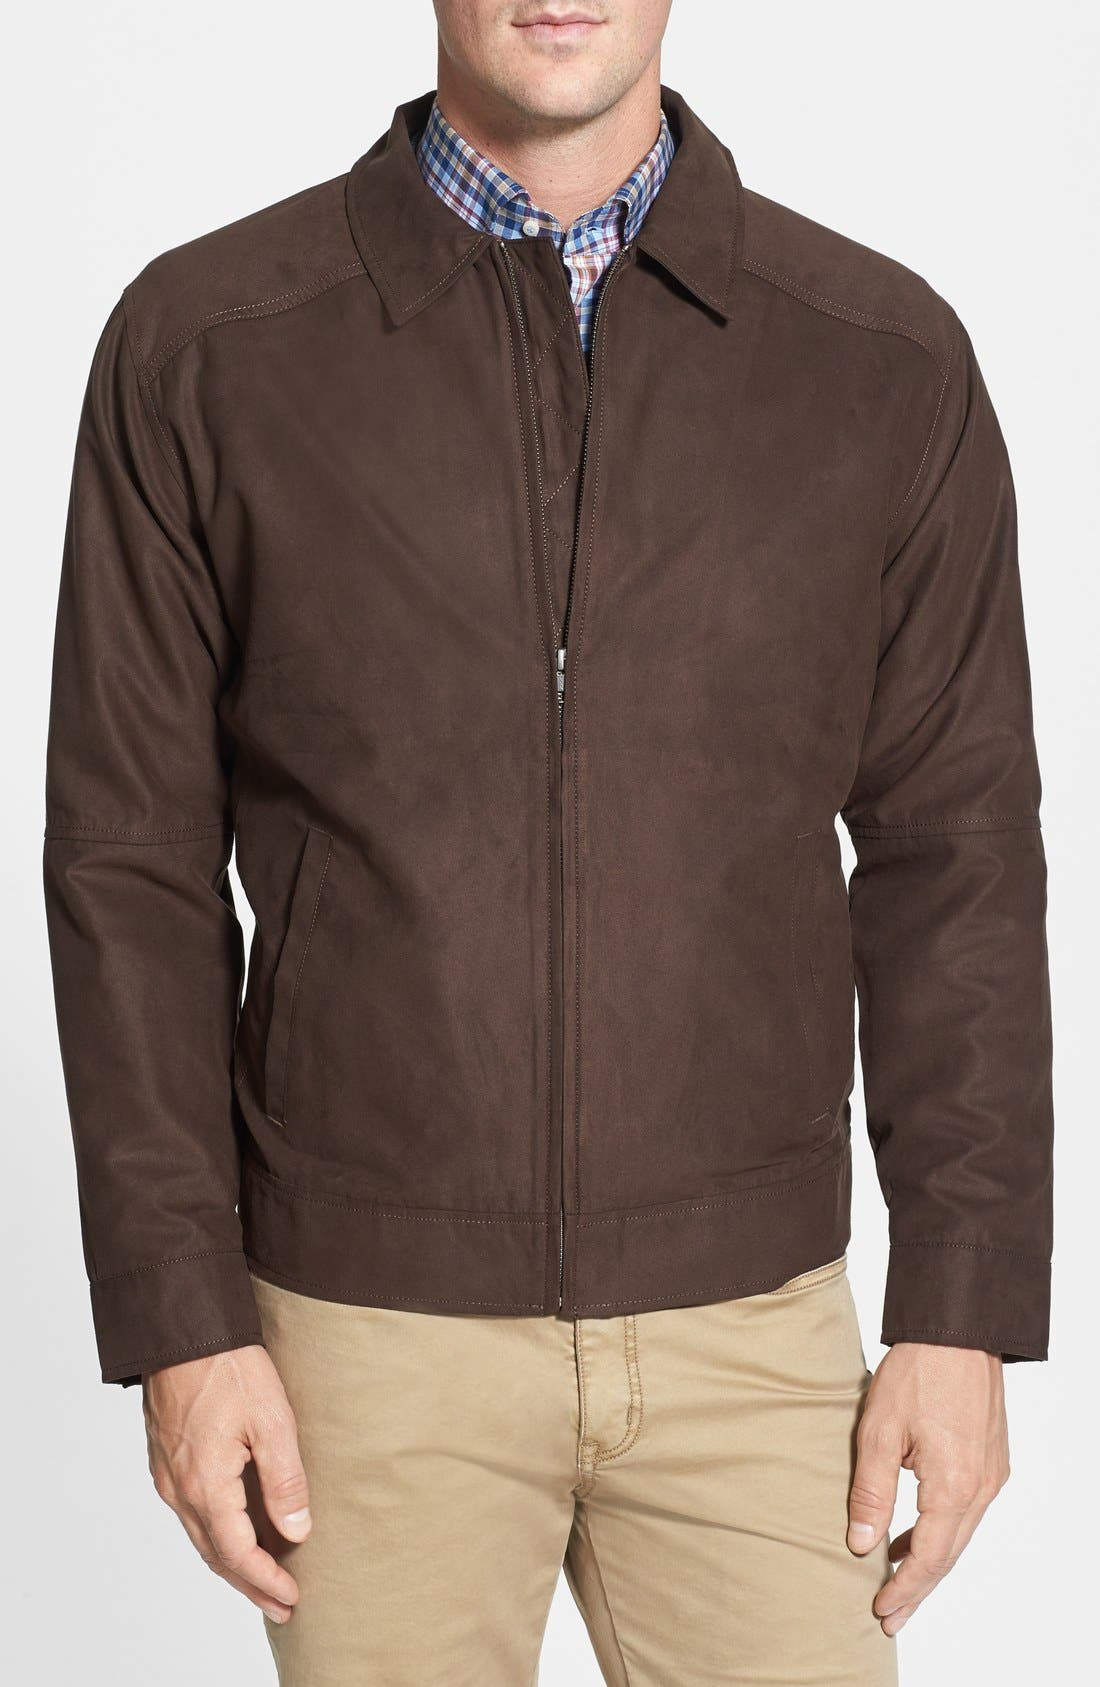 Alternate Image 1 Selected - Cutter & Buck Roosevelt Water Resistant Full Zip Jacket